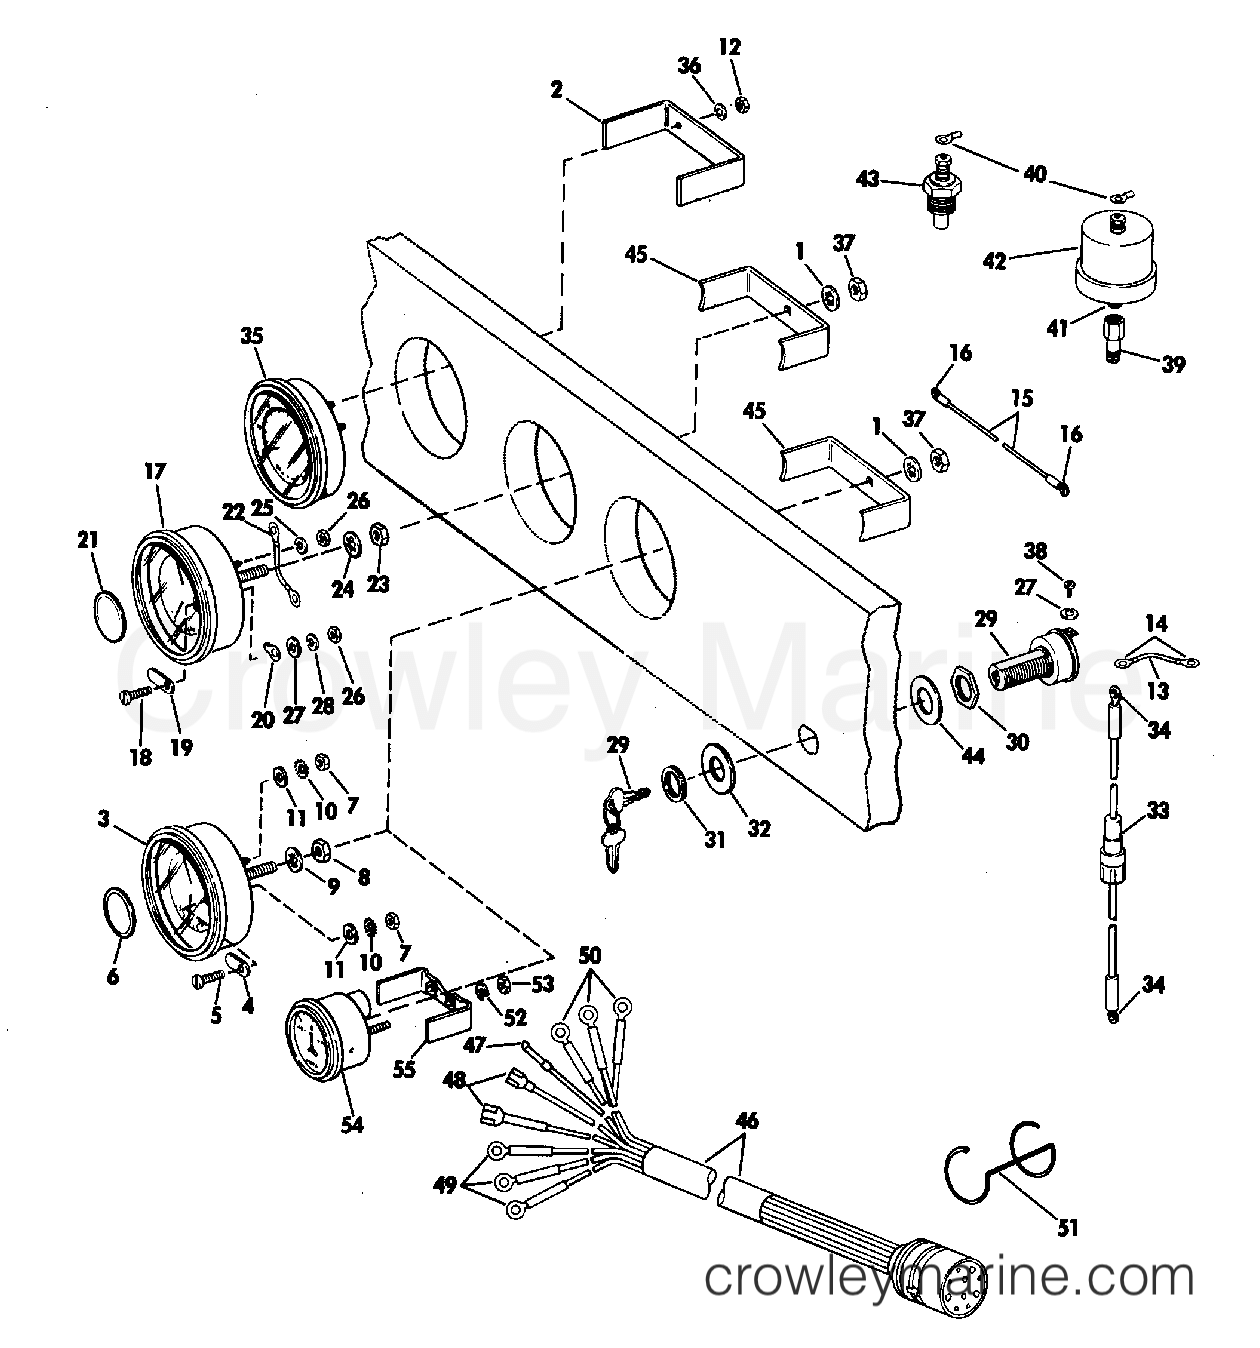 Upper Omc Wiring Harness 1972 Explained Diagrams Instrument Kit Assembly Ring Bezel 245 Jet Drive Stern Sea Doo